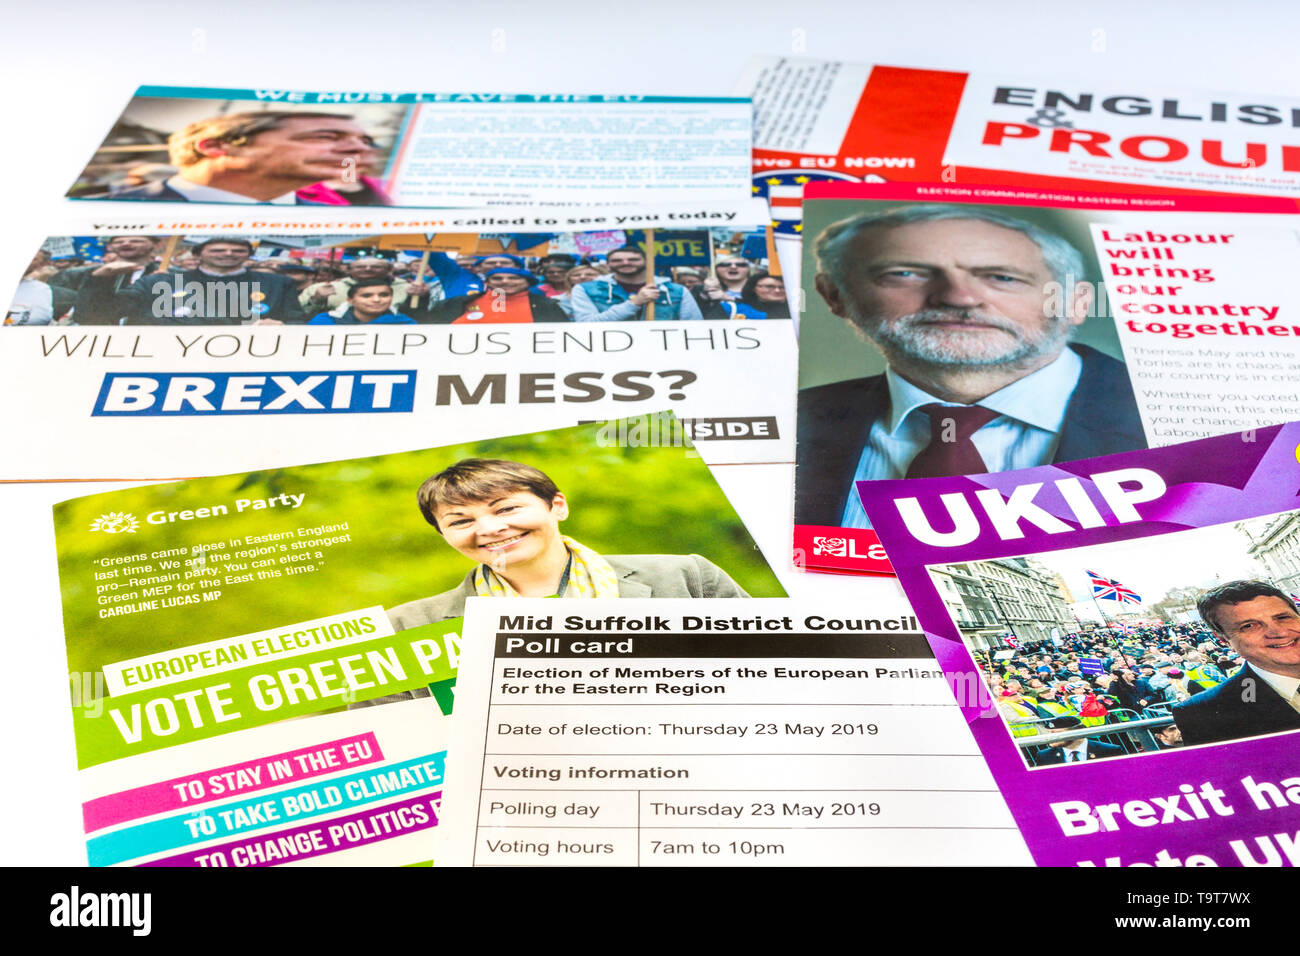 Poll card and election leaflets for the European parliament election in the eastern region of The UK 2019. - Stock Image